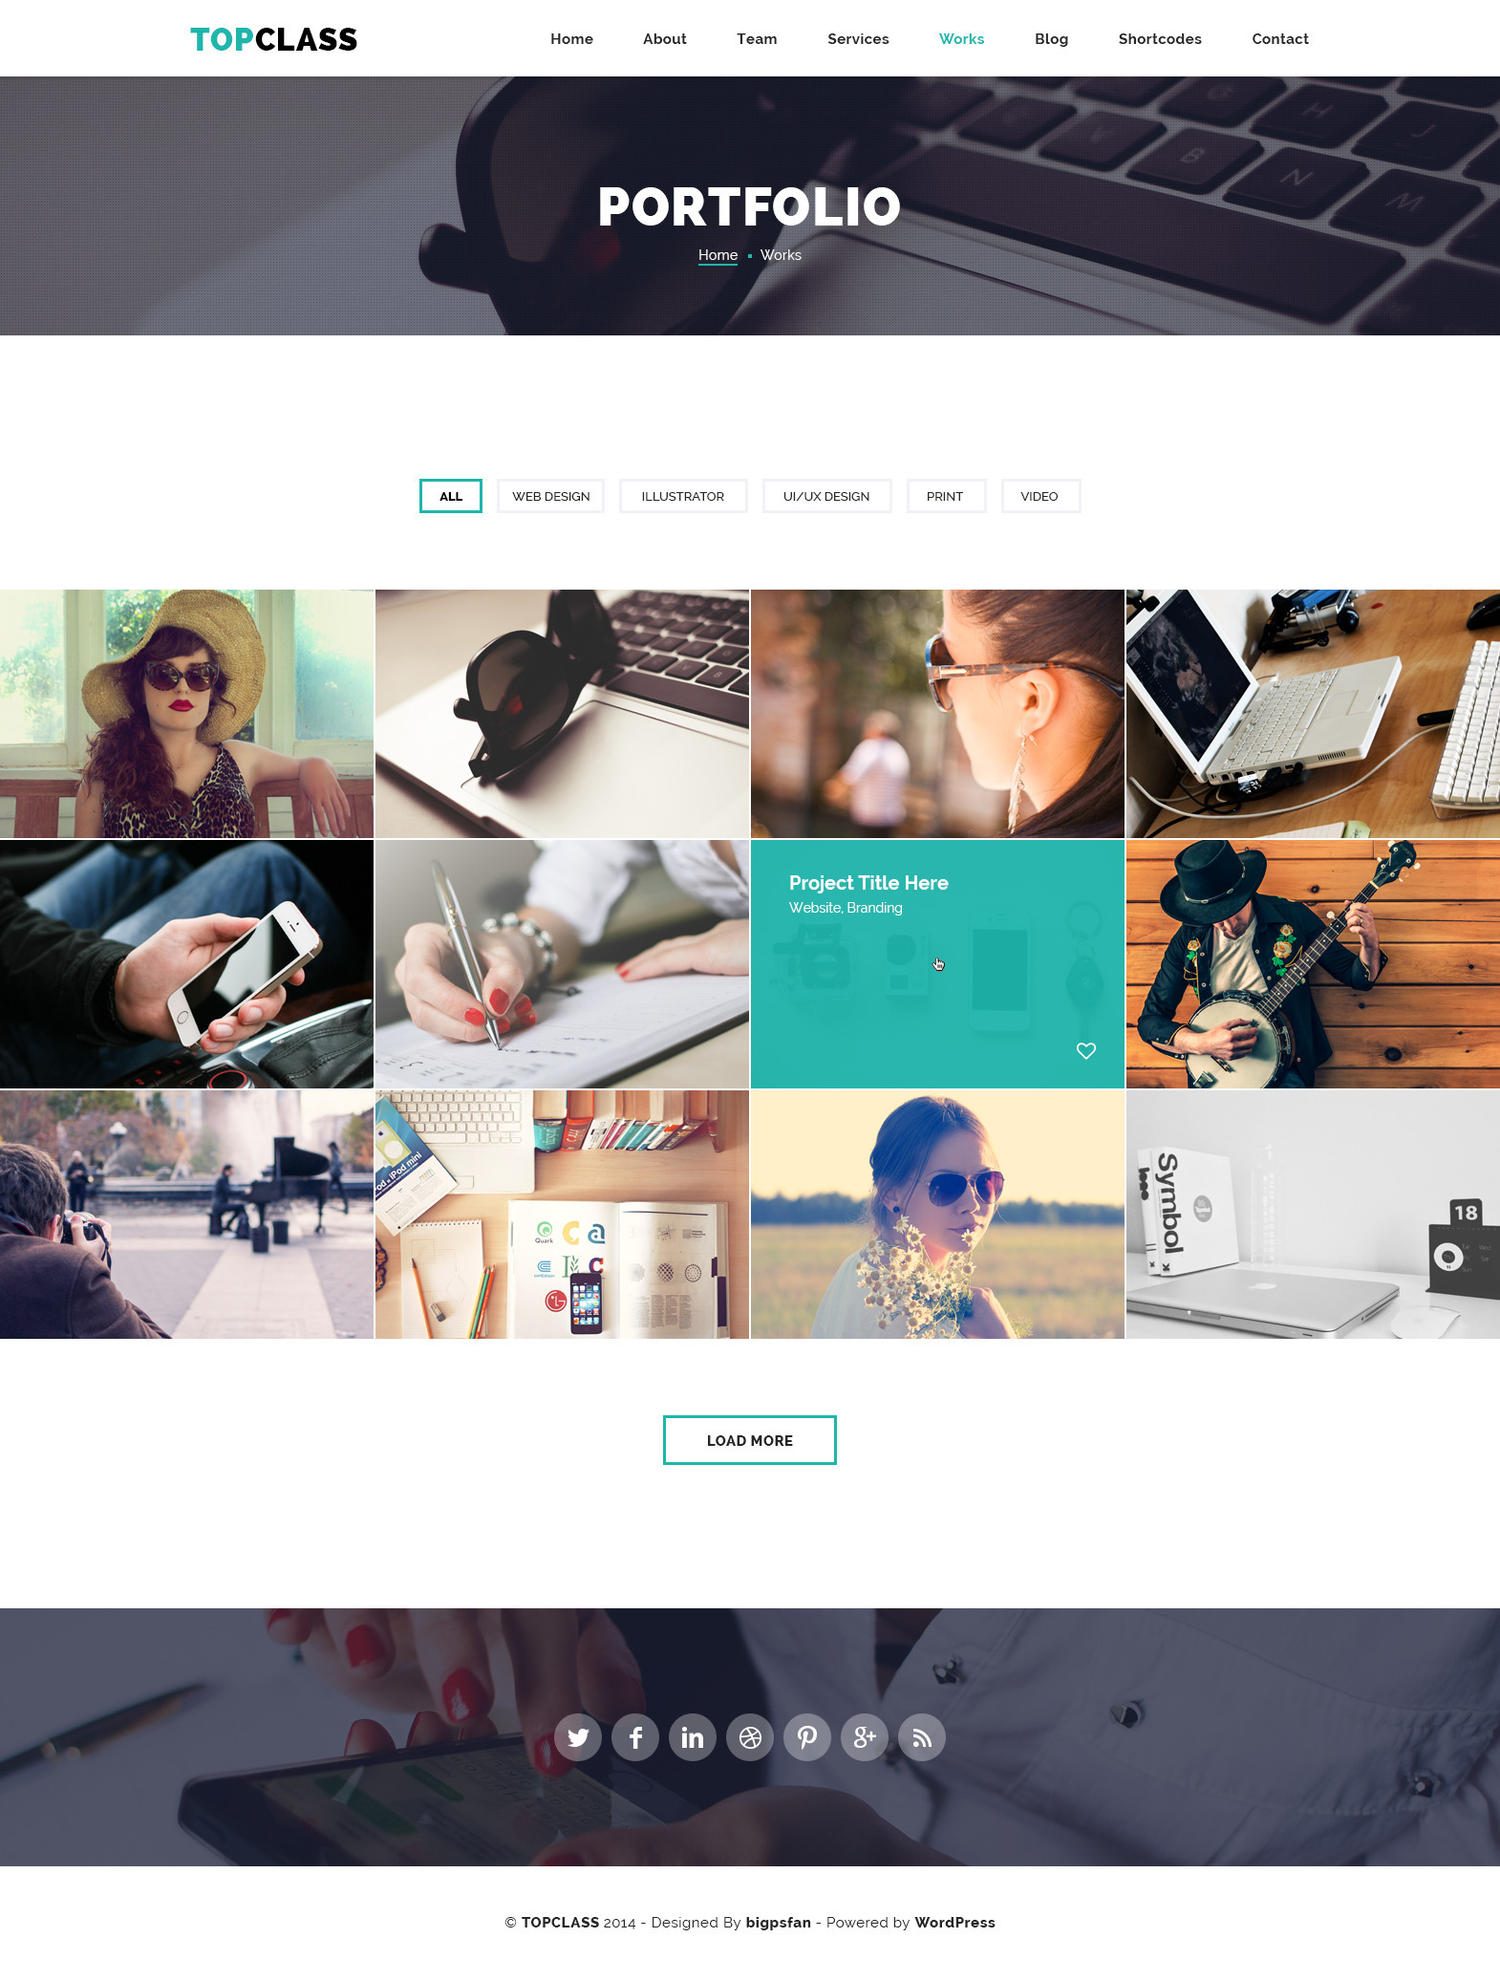 WordPress Blog/Website Migration  by Jewel_Theme - 106338